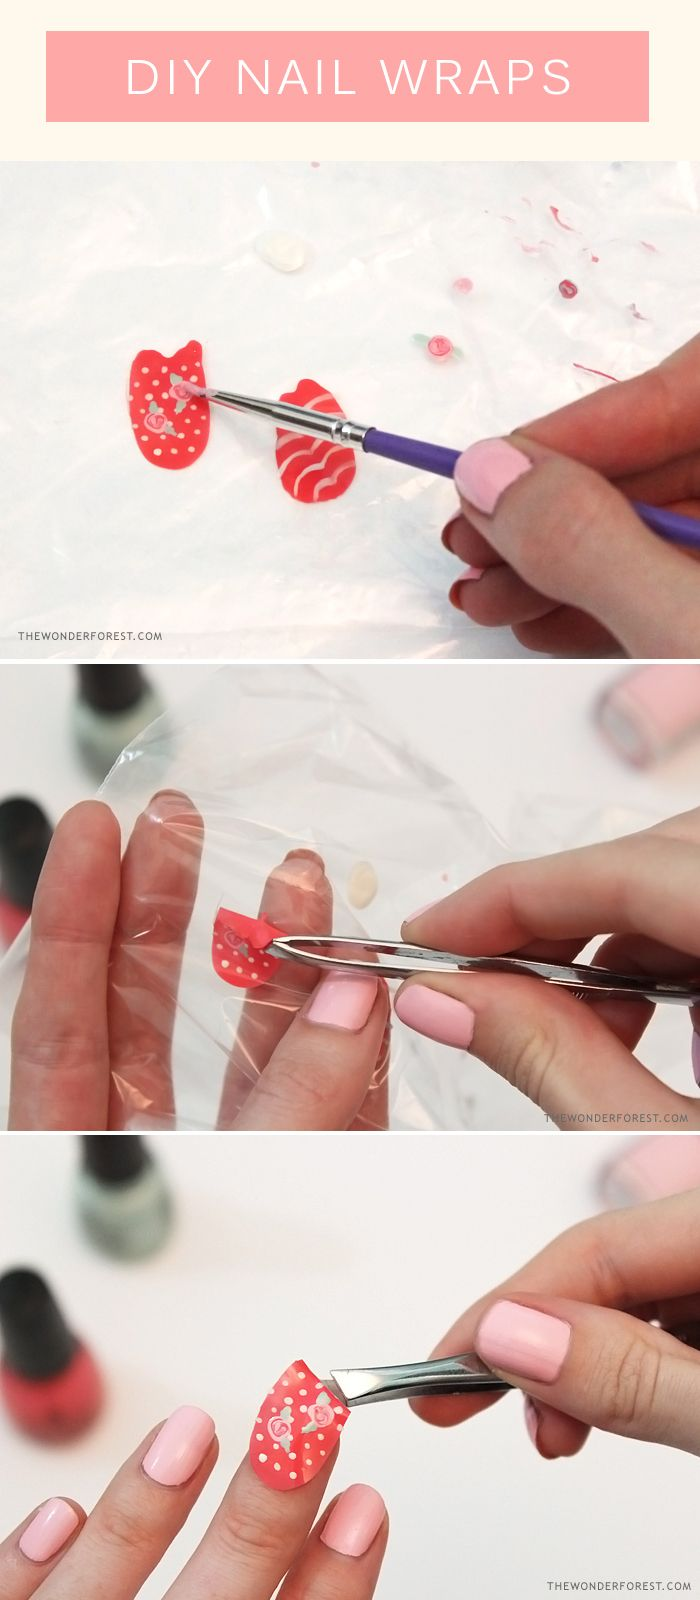 Make Your Own Nail Wraps Wonder Forest Design Life Annarebeekah Let Me Know If You Try This It Seems Like A Lot Of Work